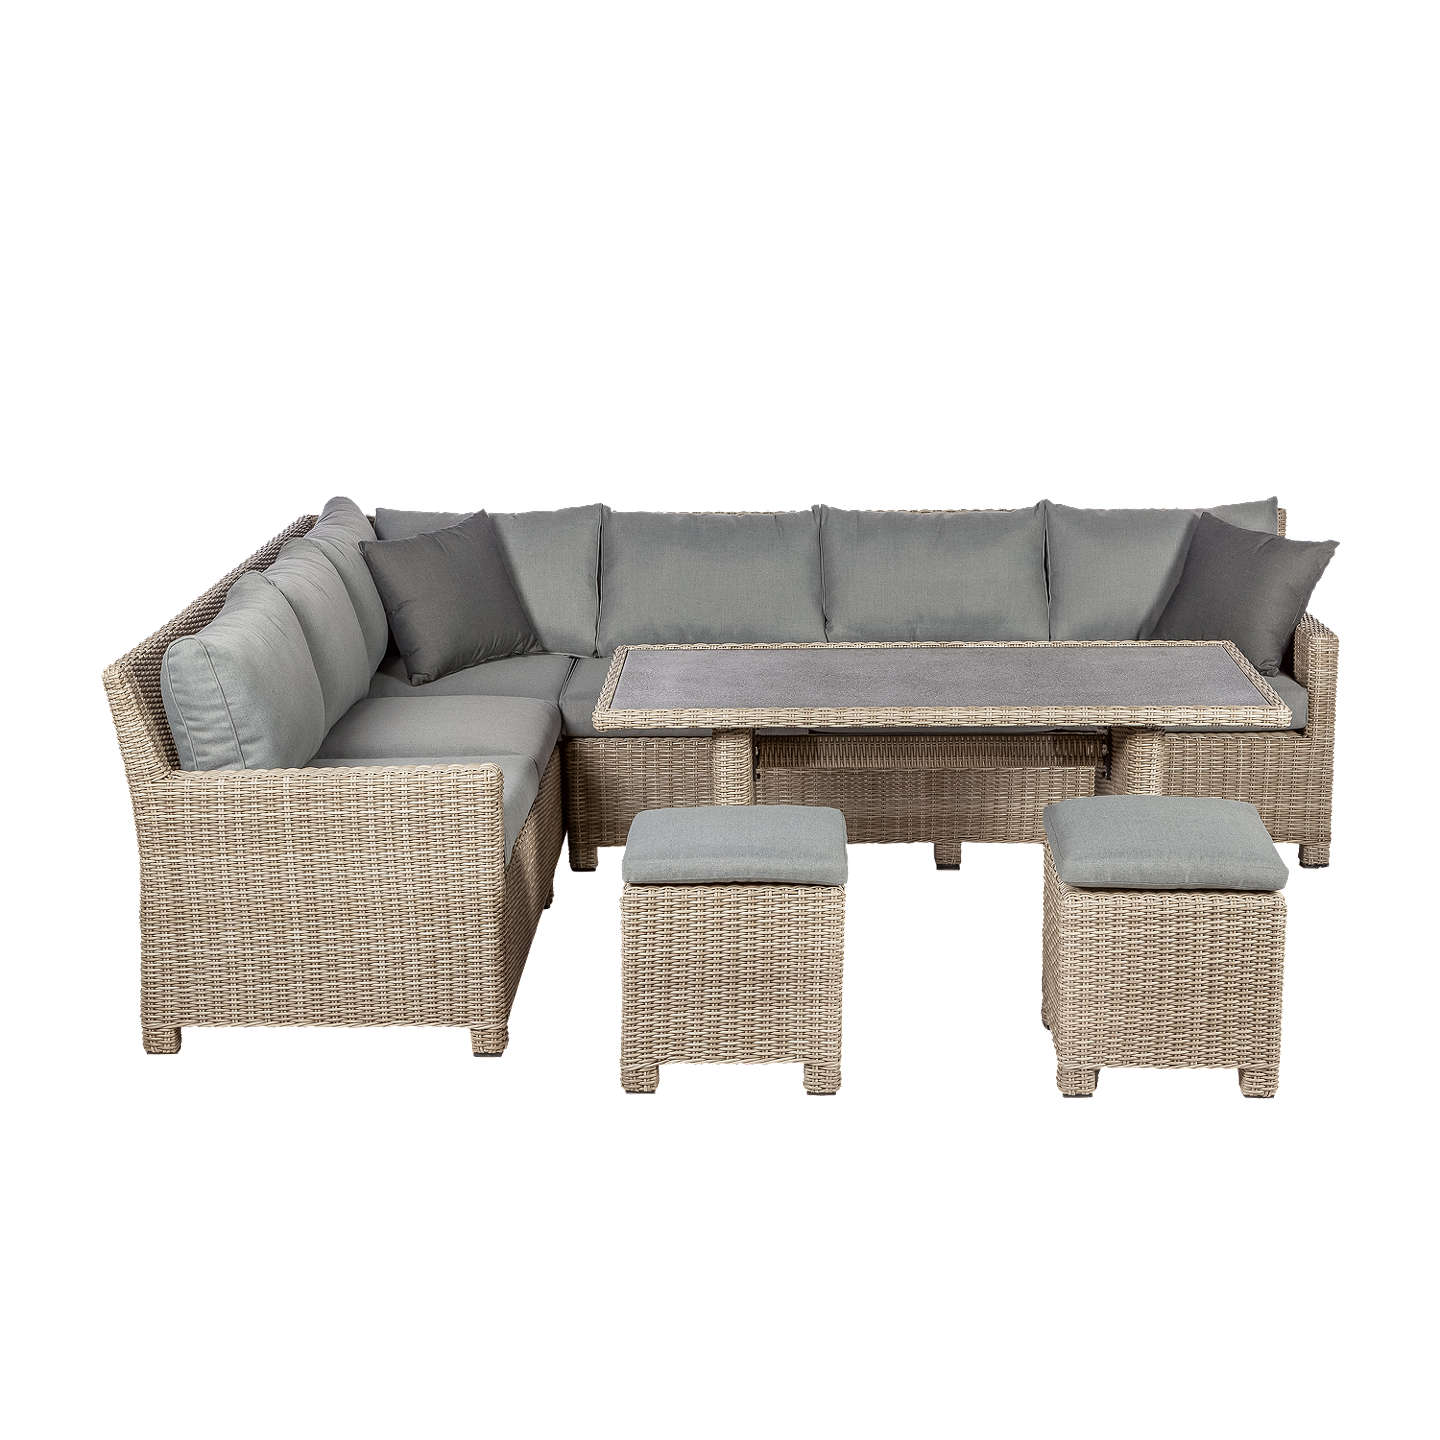 Royalcraft Wentworth 6 Seater Garden Modular Corner Dining Table And Chairs Set Grey At John Lewis